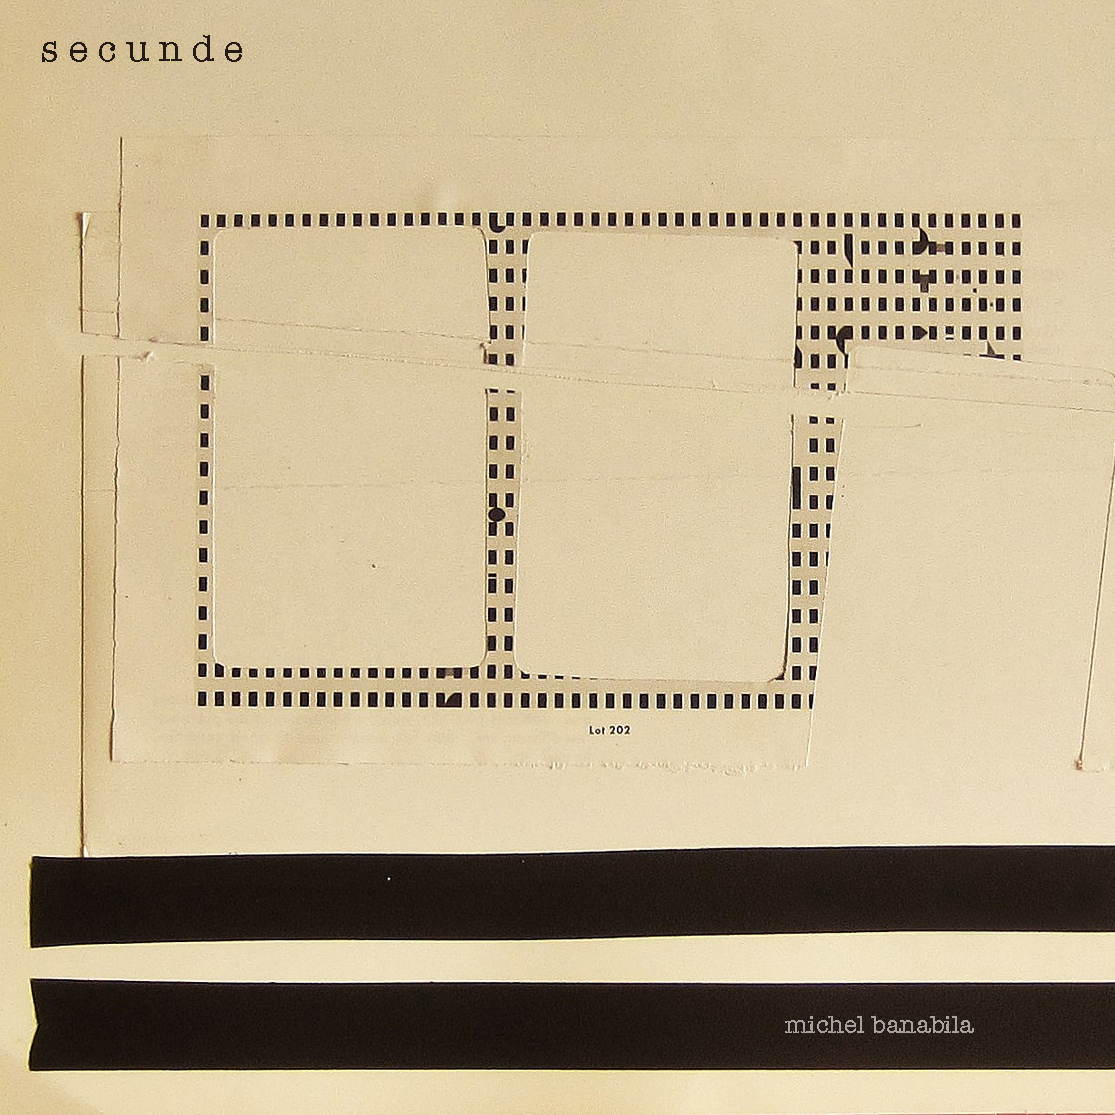 Secunde - Michel Banabila - artwork Harold McNaron